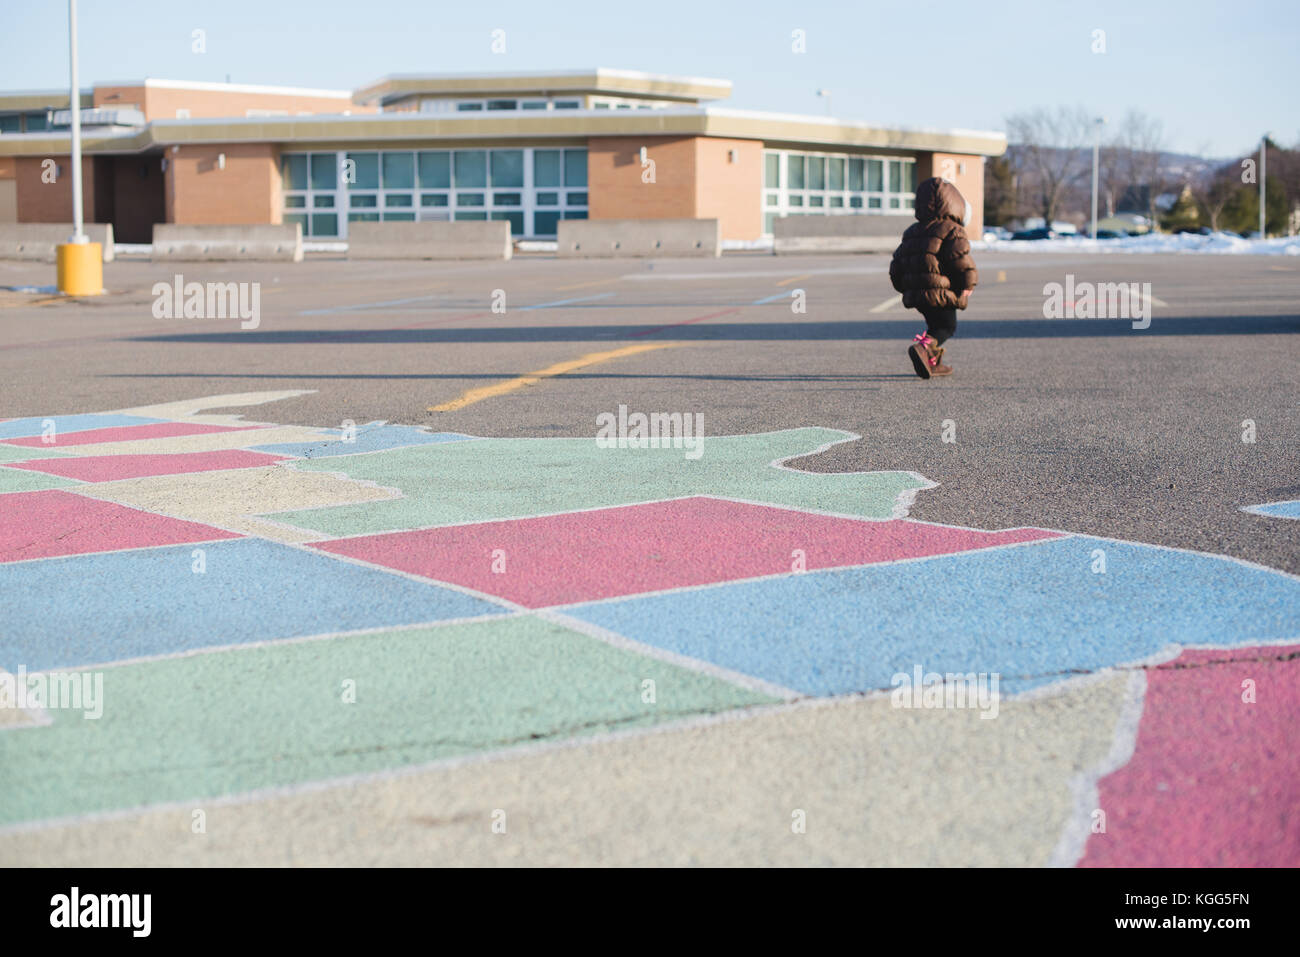 a young girl walks across the parking lot of a school - Stock Image